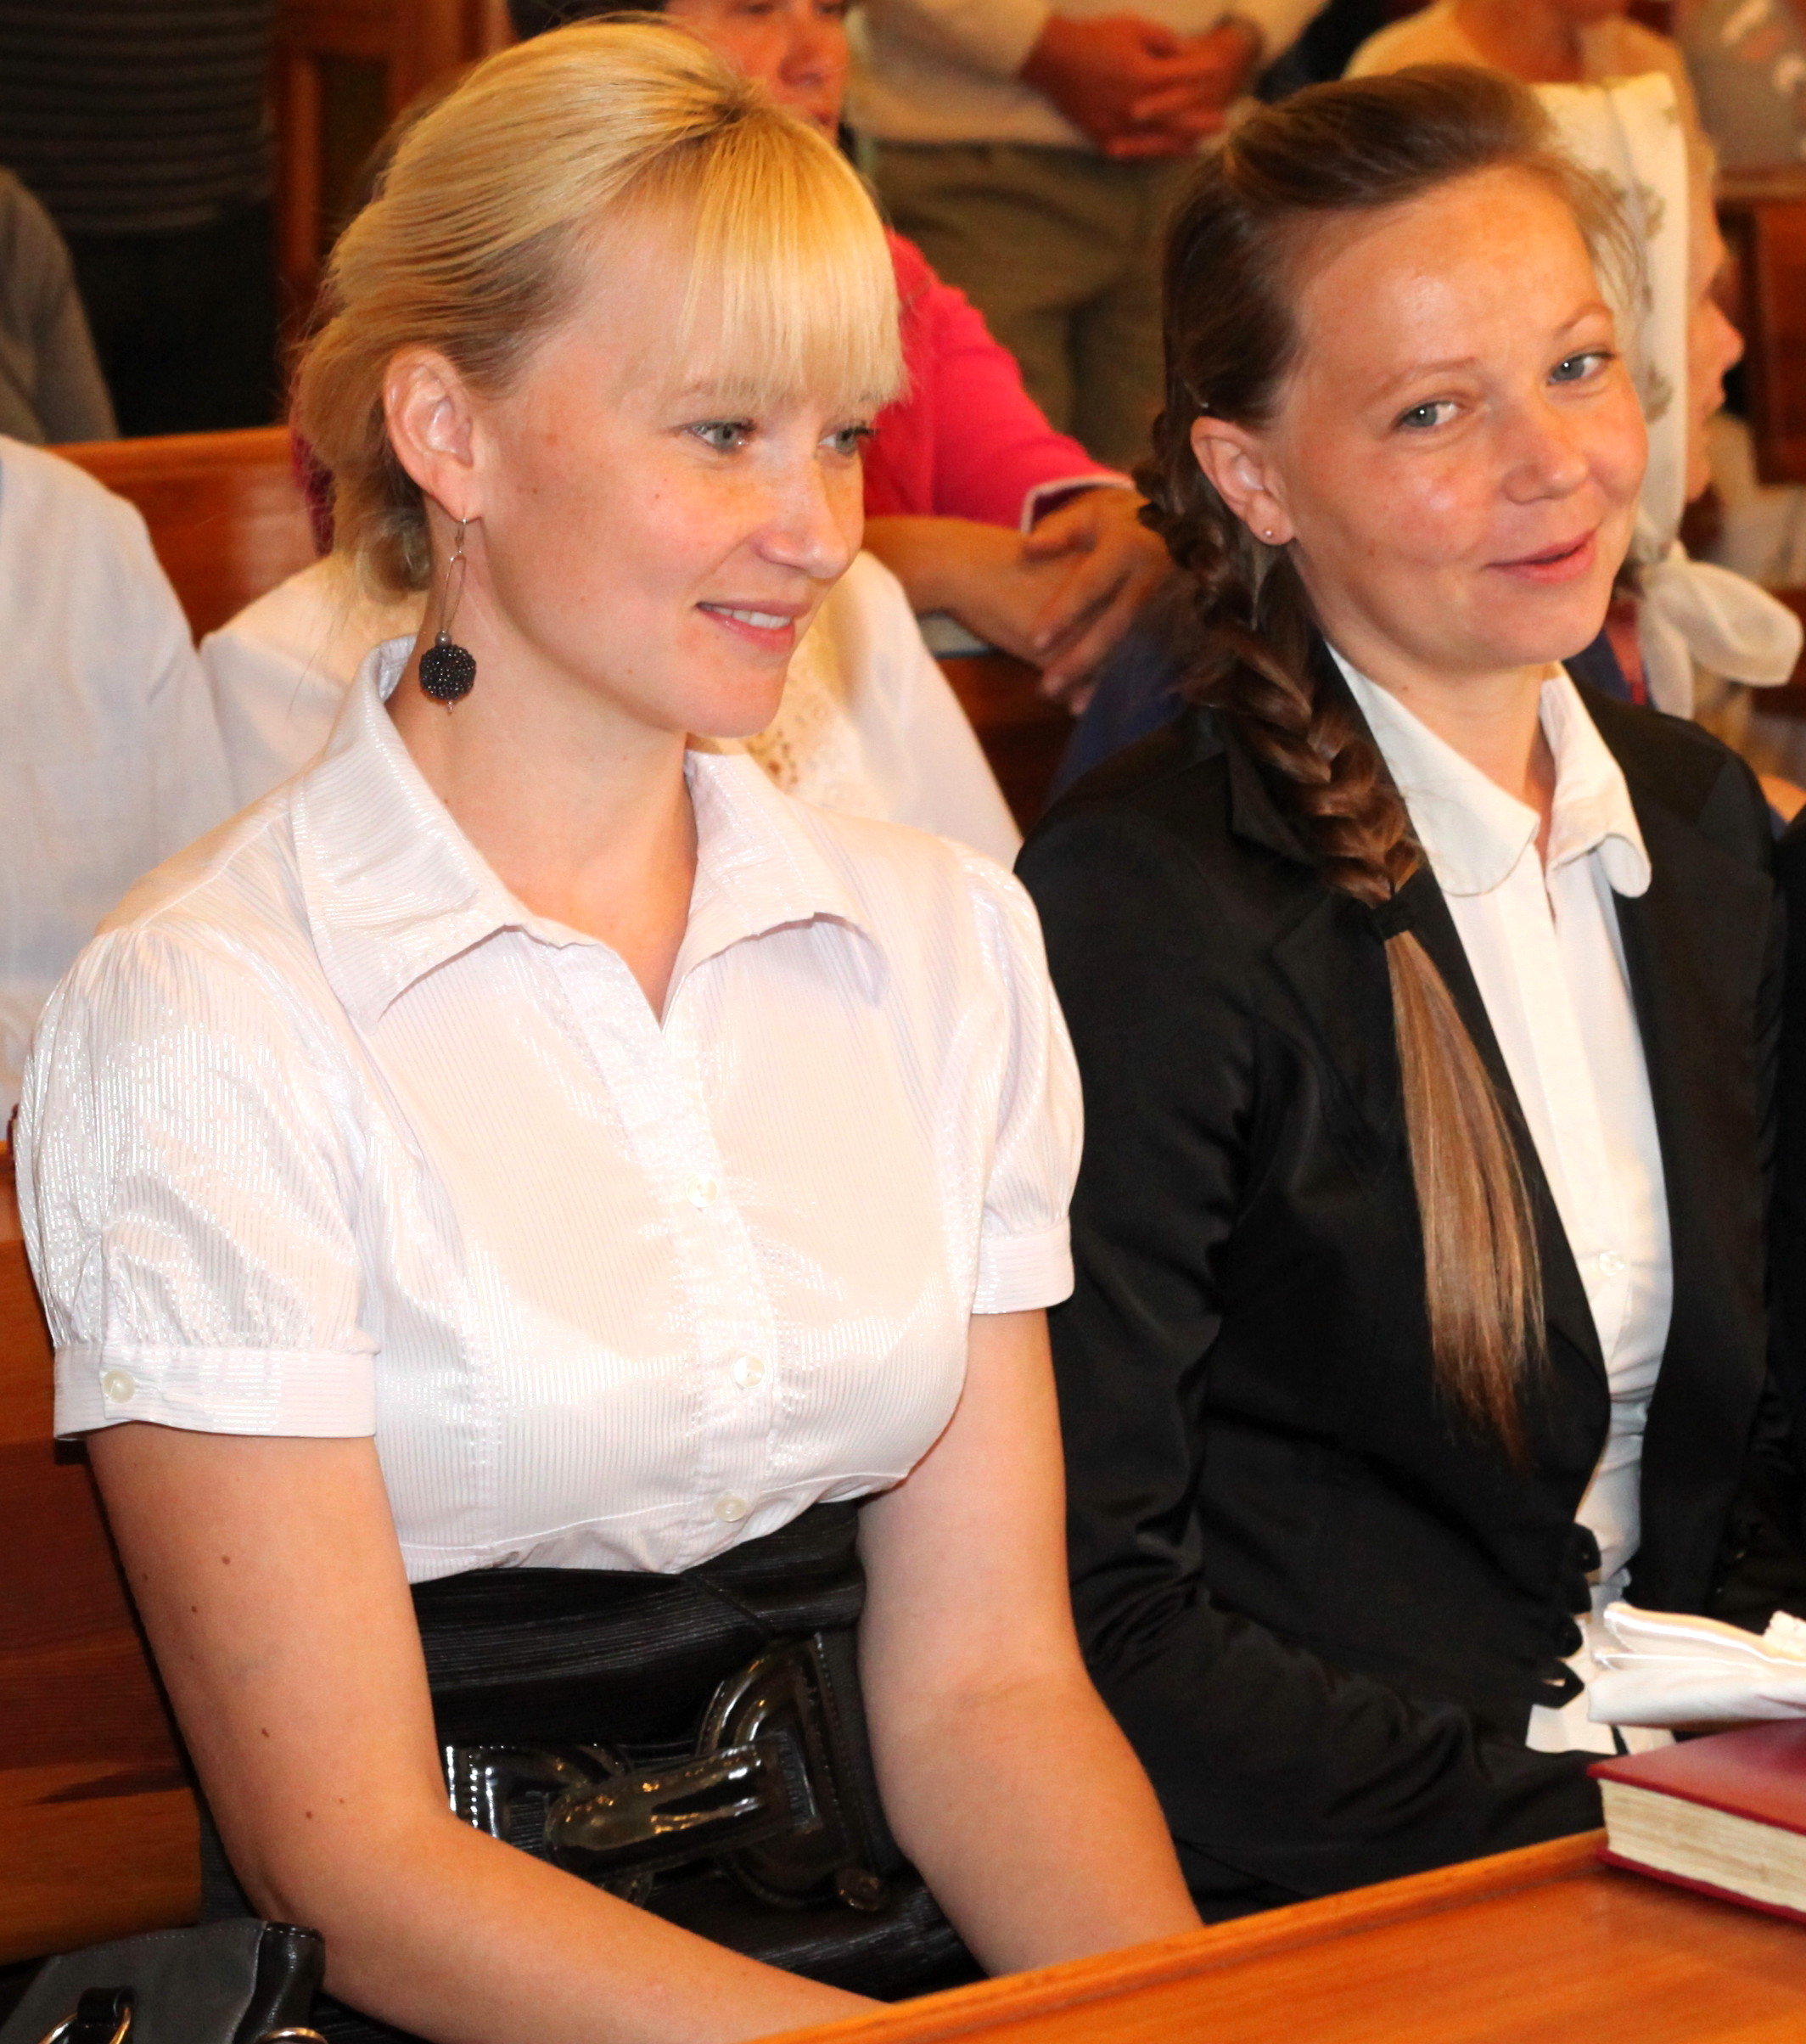 godmother (left) and mother at the baptism of a baby boy in the Catholic Church, picture 14